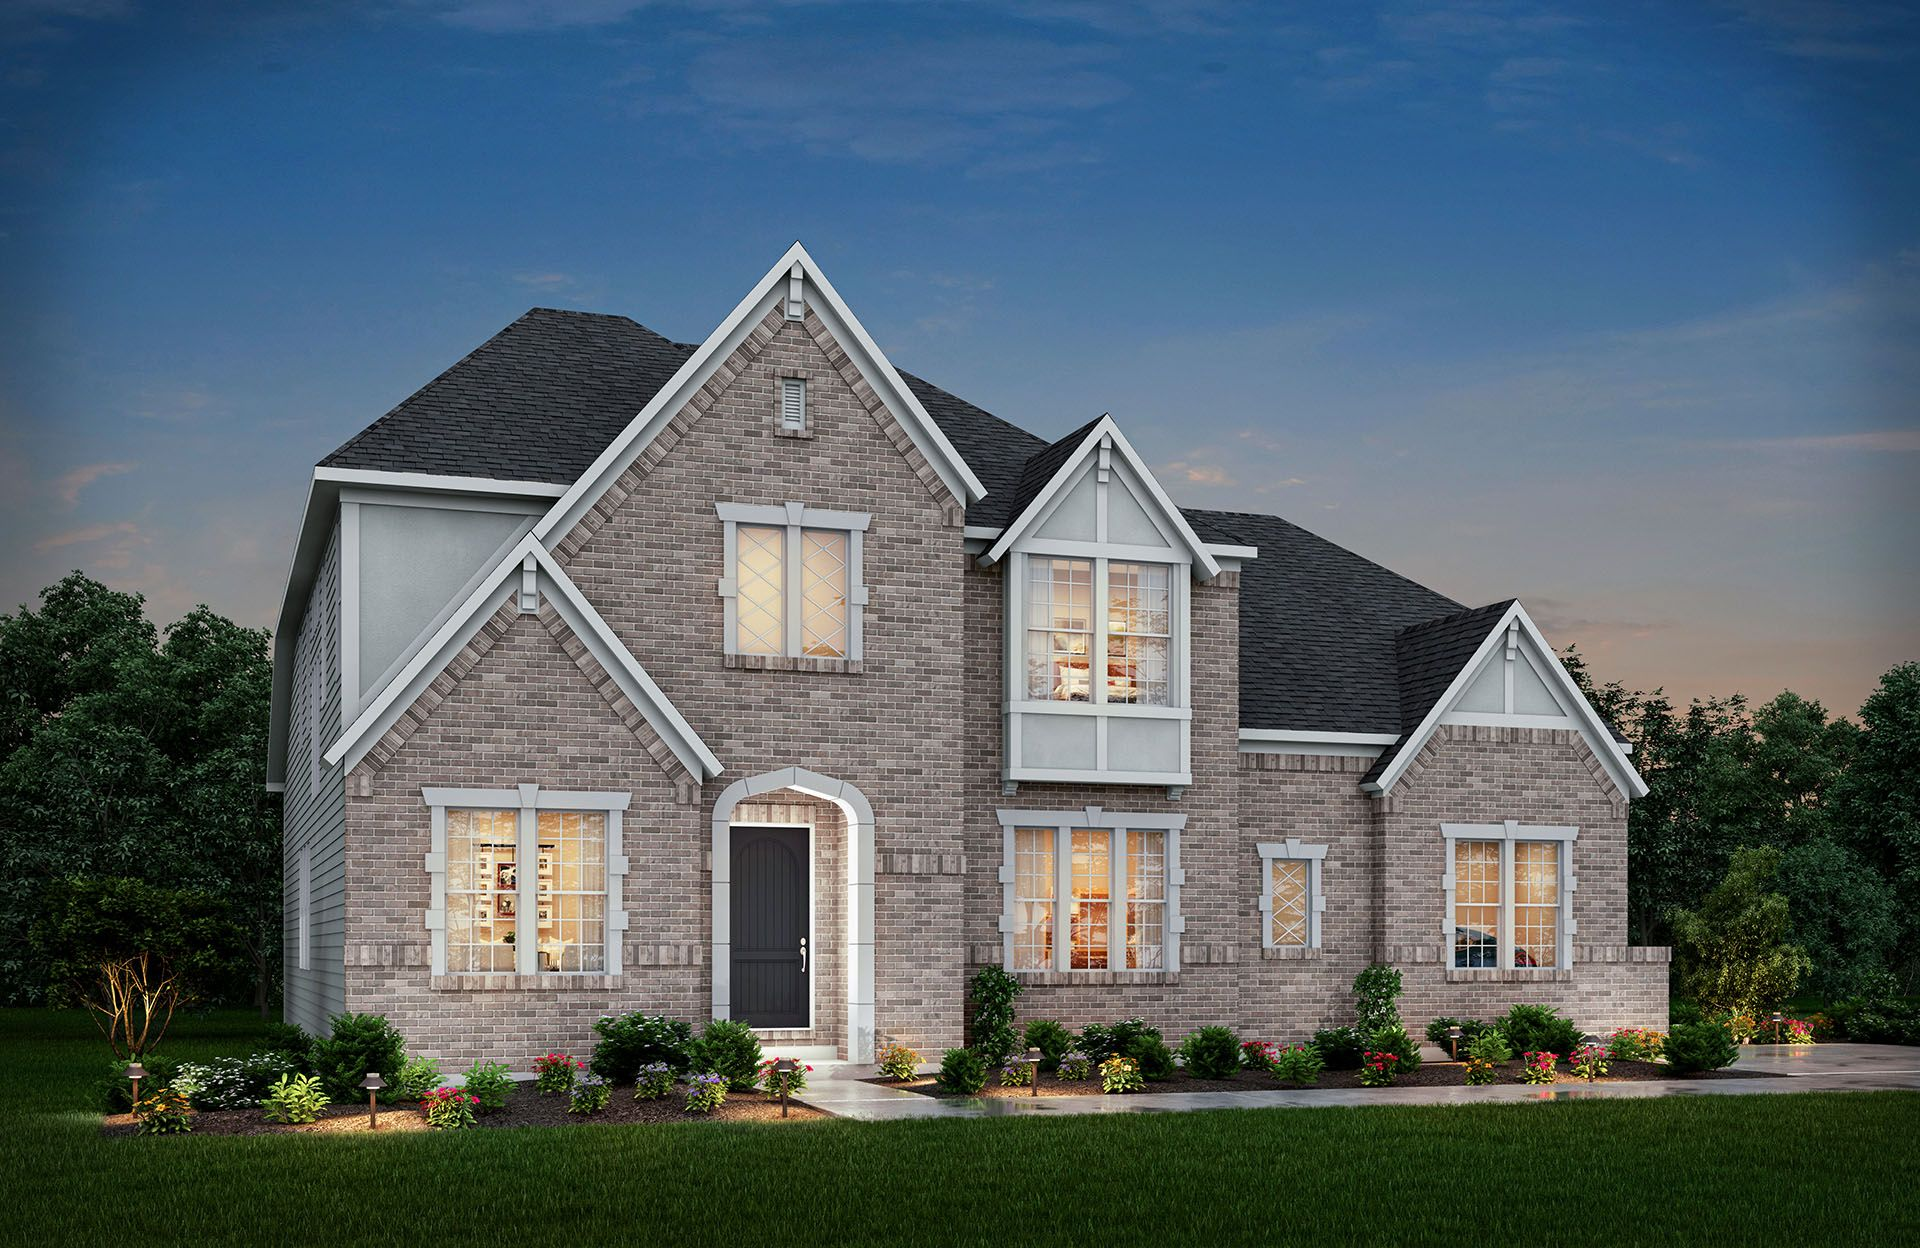 Single Family for Active at Flat Fork - Monticello 10882 Edgewood Drive Fortville, Indiana 46040 United States